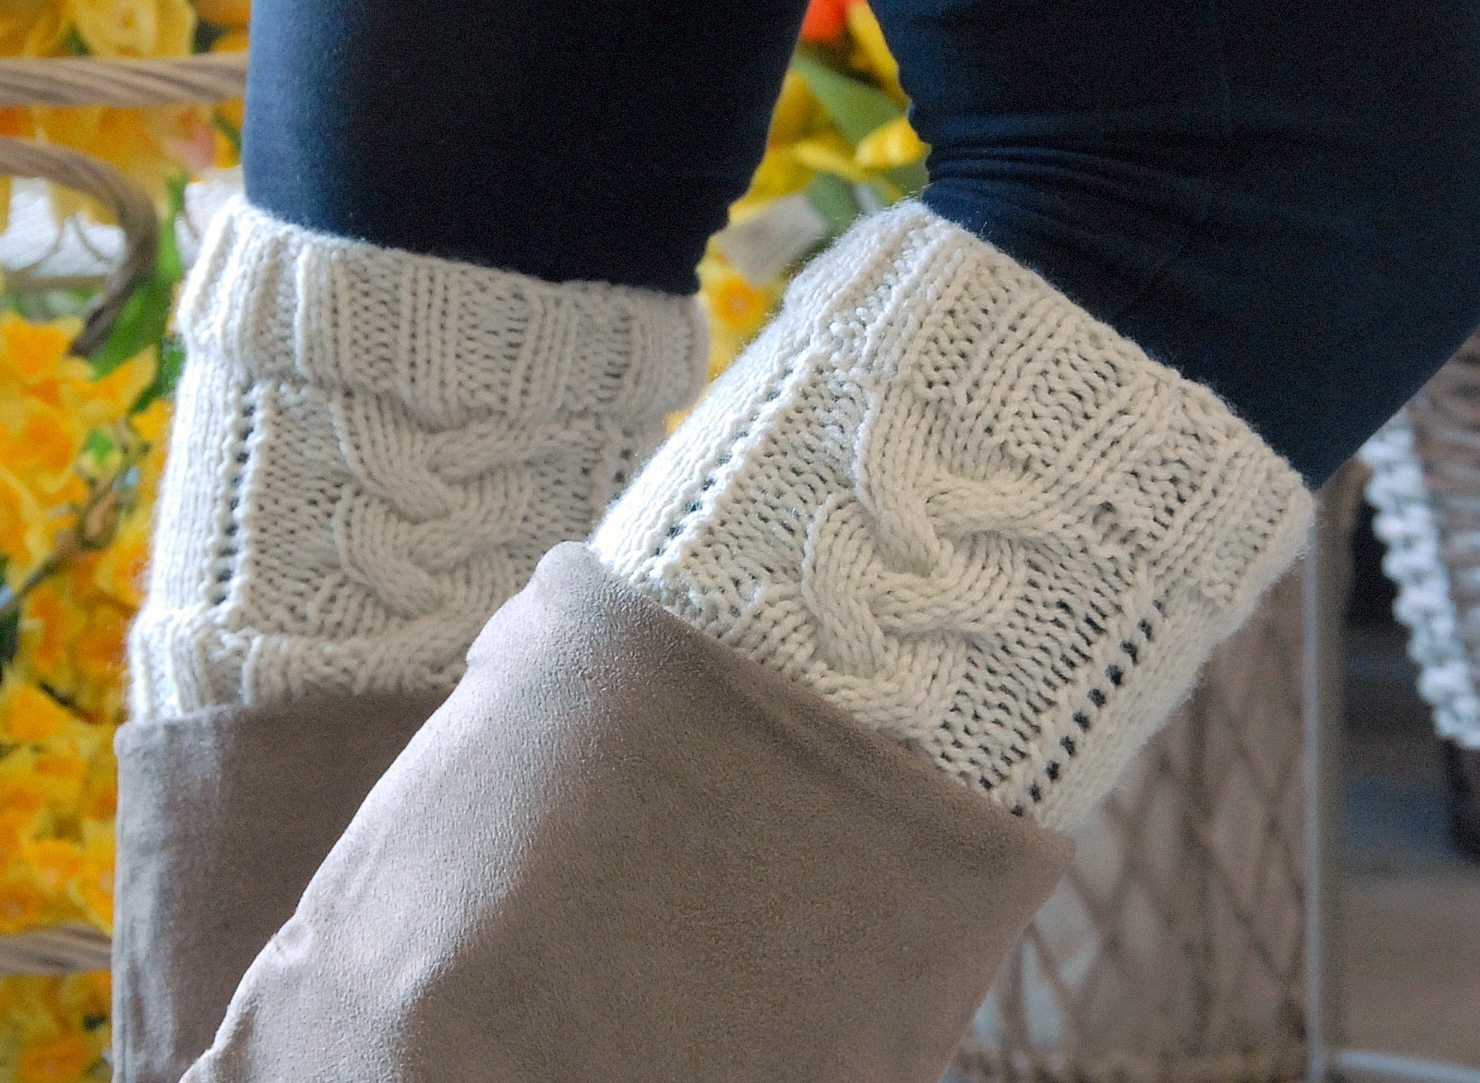 Knitting Patterns Free Boot Cuffs : Ben Franklin Crafts and Frame Shop, Monroe, WA: Knitted ...